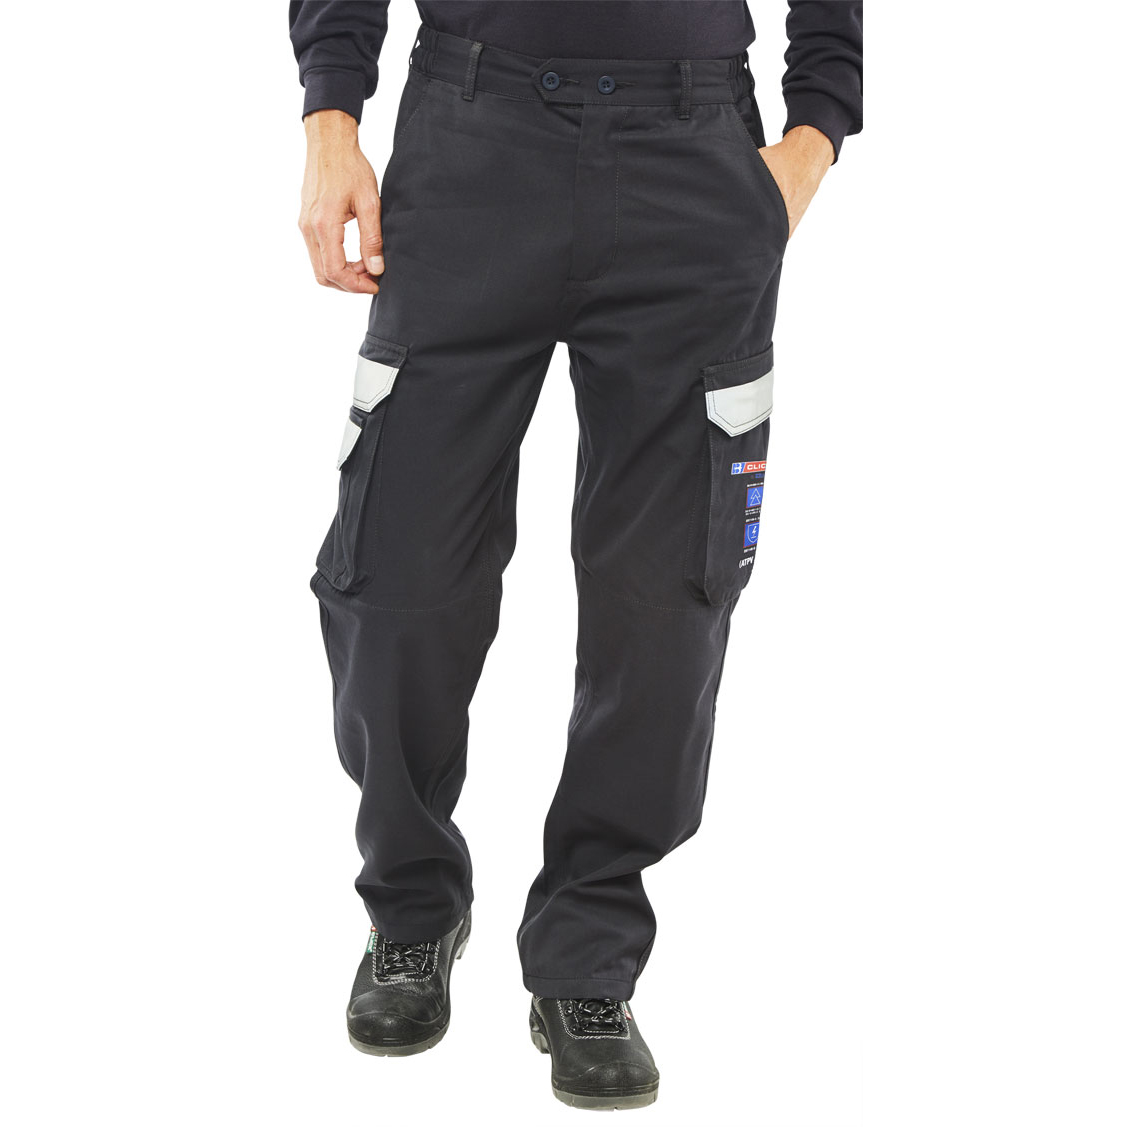 Fire Retardant / Flame Resistant Click Arc Flash Trousers Fire Retardant Navy Blue 42-Tall Ref CARC4N42T *Up to 3 Day Leadtime*